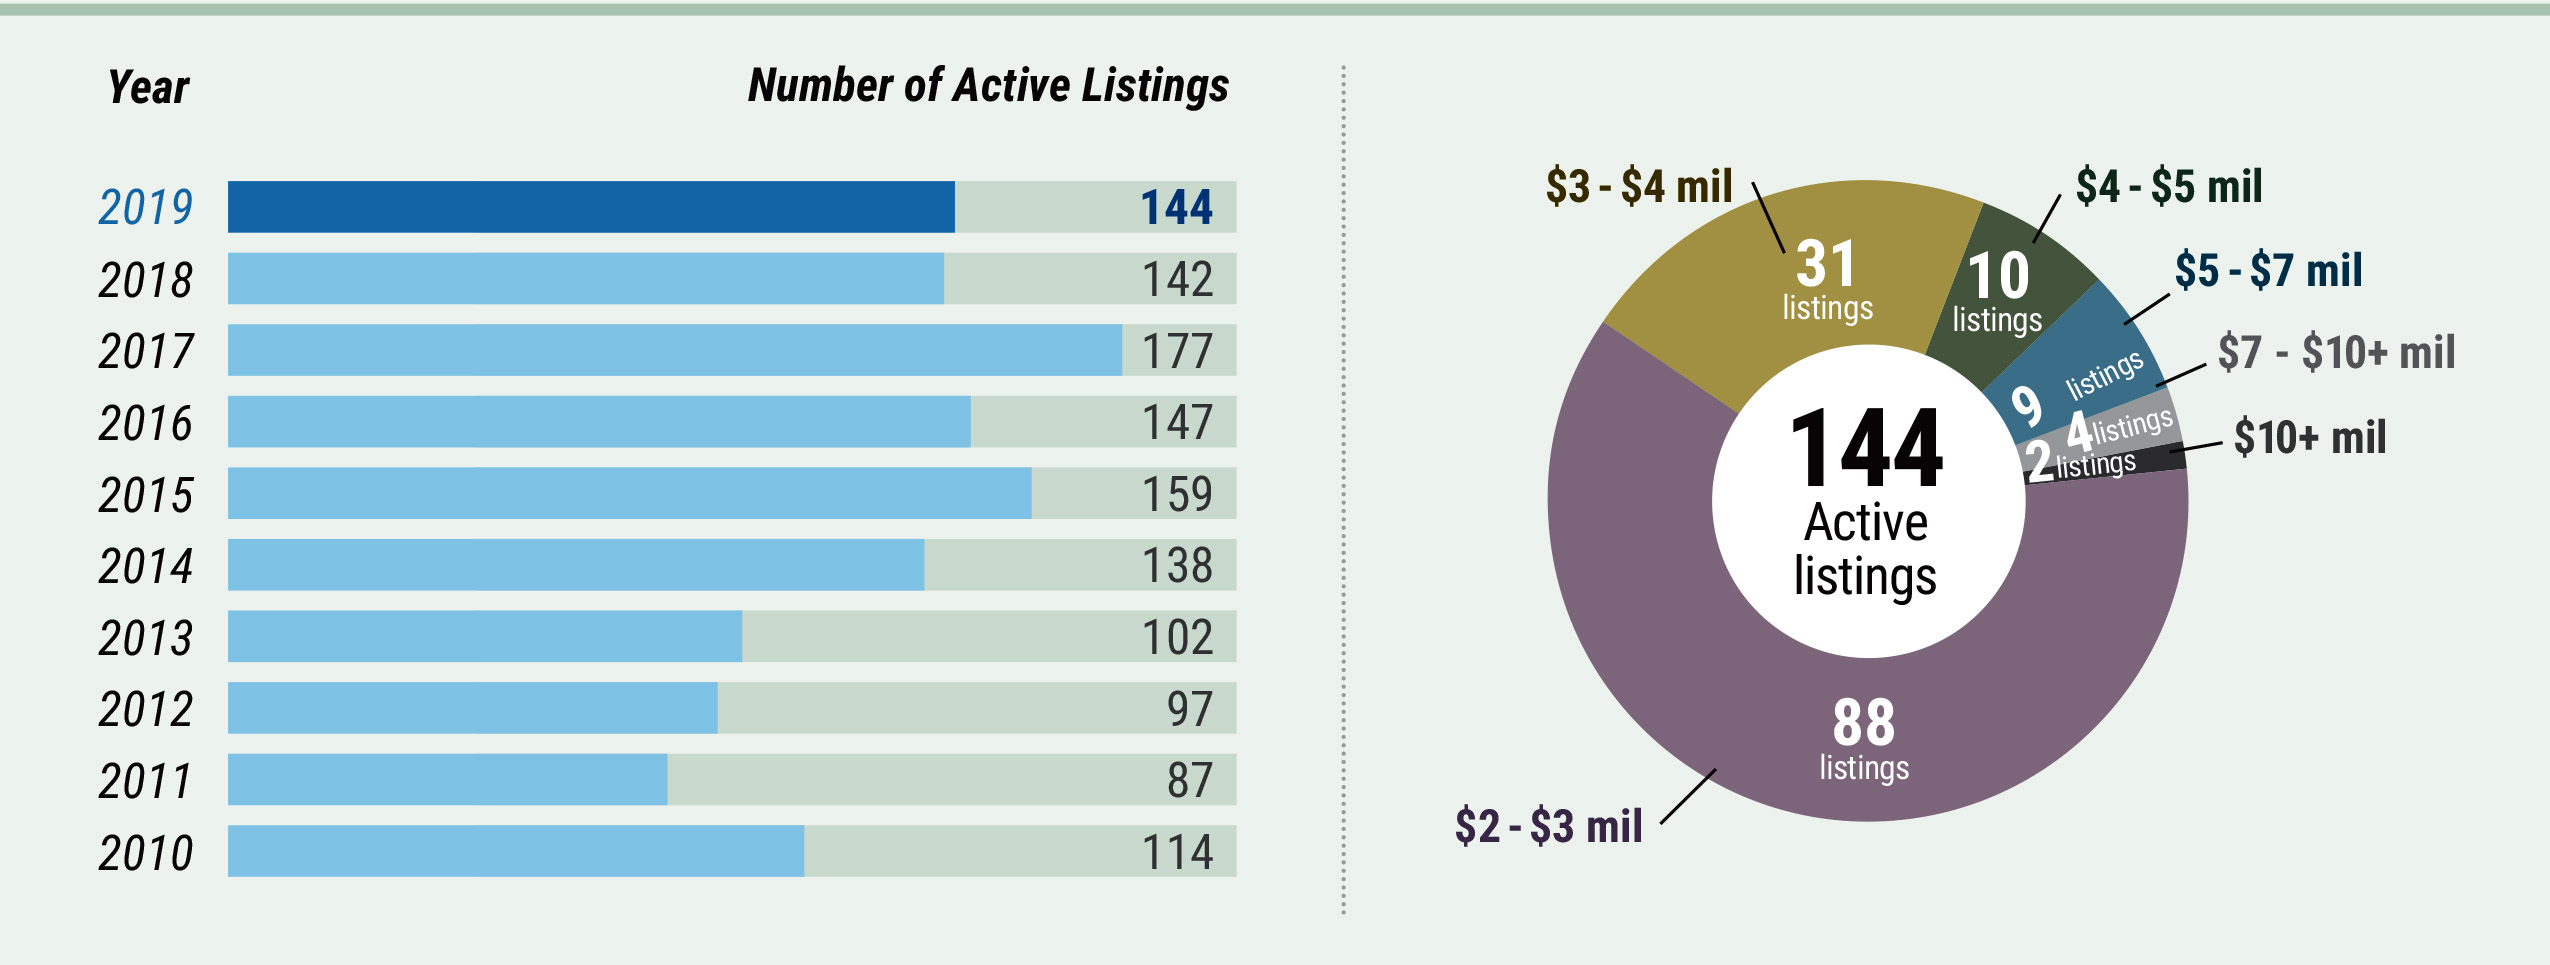 Middlesex County Market Watch - Number of Active Listings